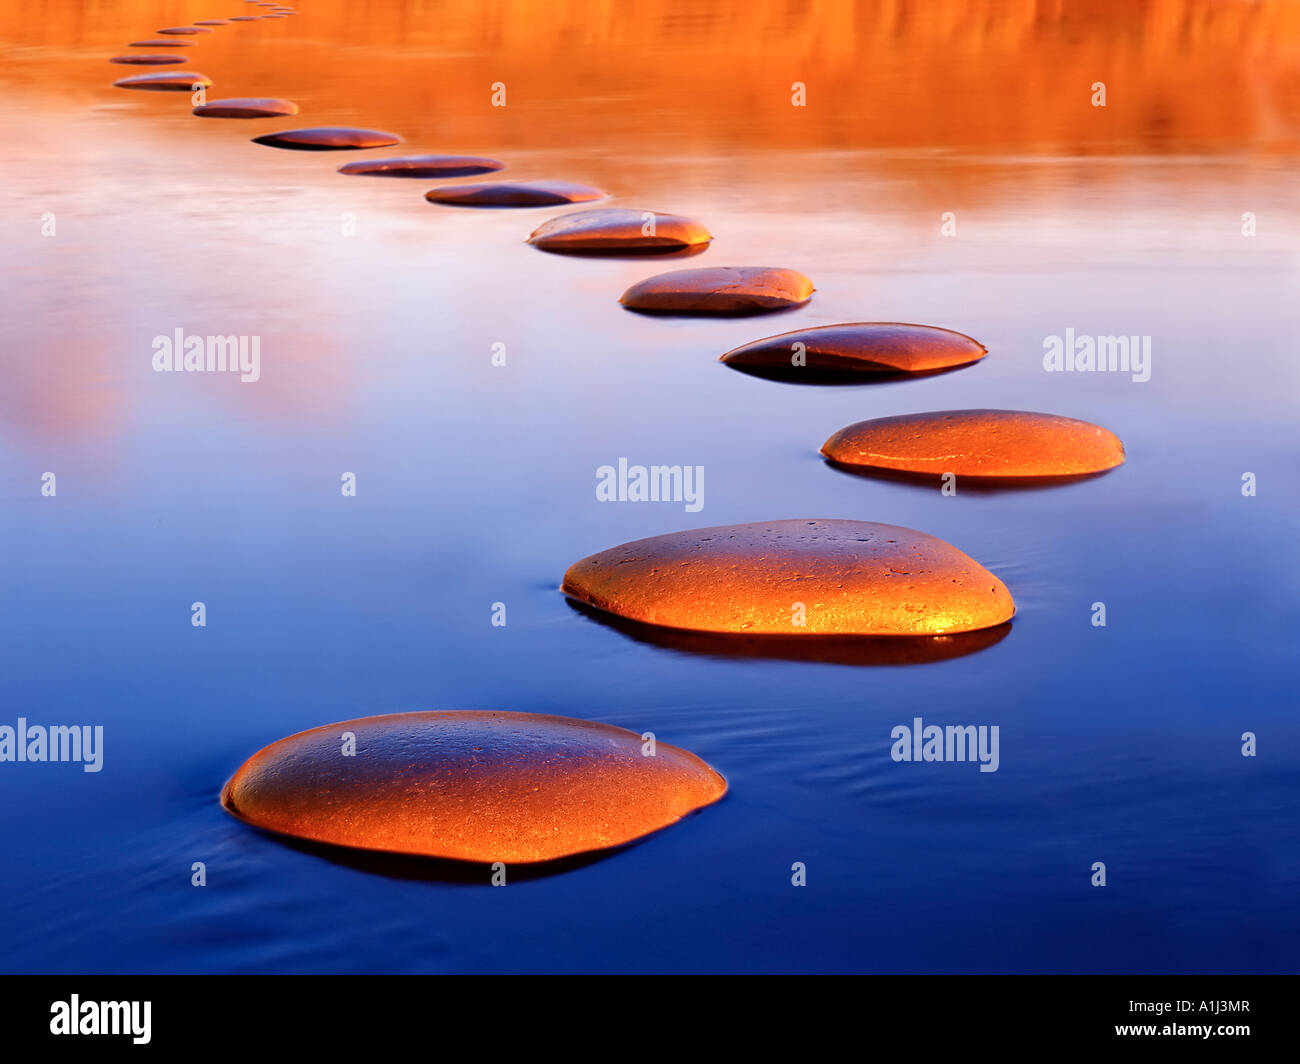 Stepping stones provide a safe passage through deep water - Stock Image